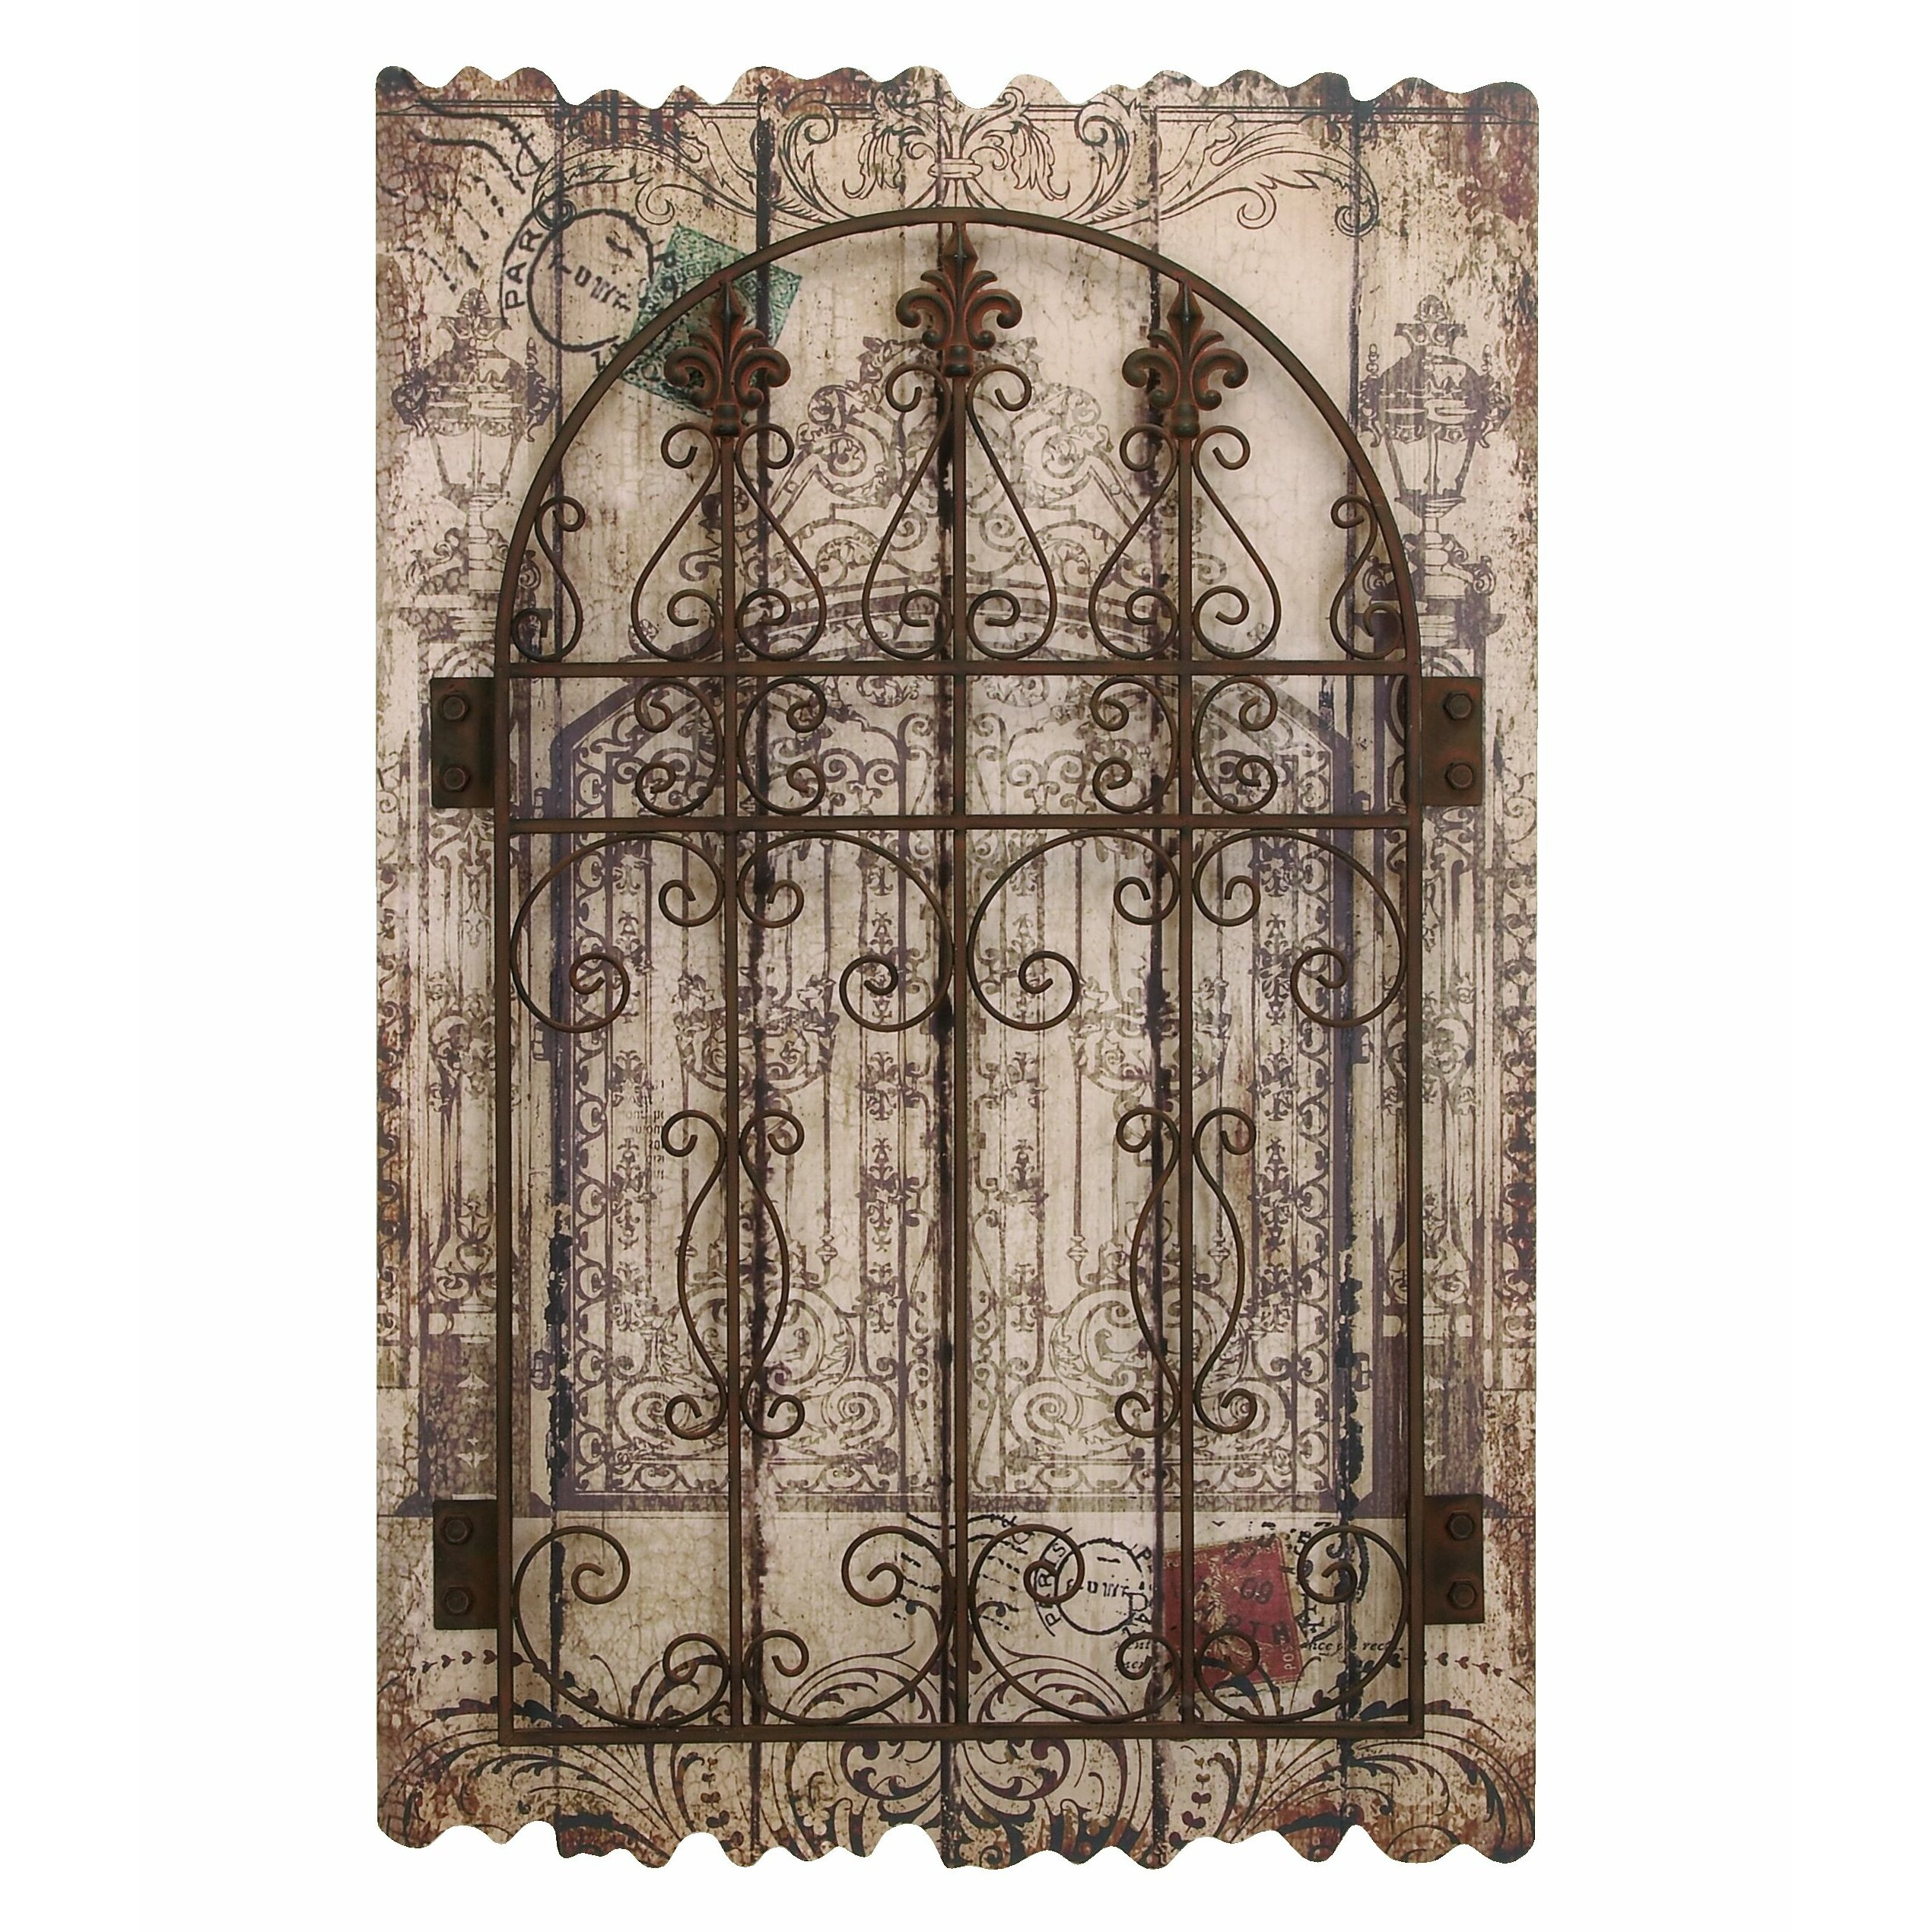 Woodland Imports Décor Rustic Intricated Wall Décor